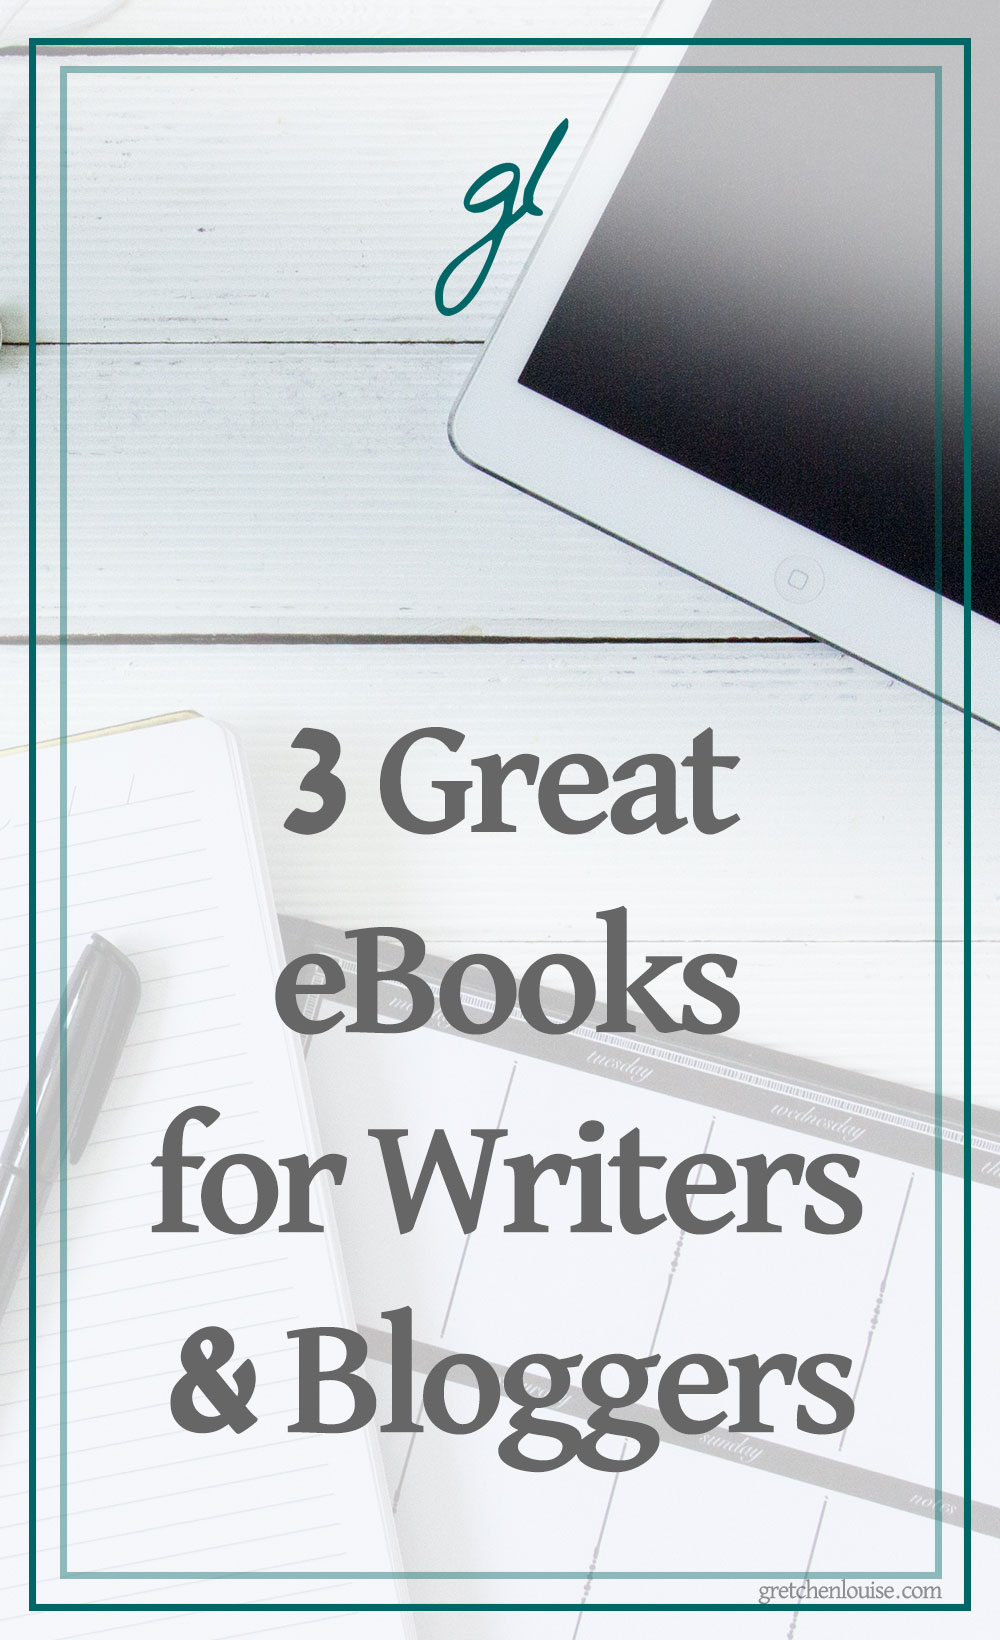 Whether you are a blogger who now calls yourself a writer, or a writer who's taken up blogging, it's important that you continue to hone your craft and tone your purpose.Here are three books that will help you do just that! via @GretLouise